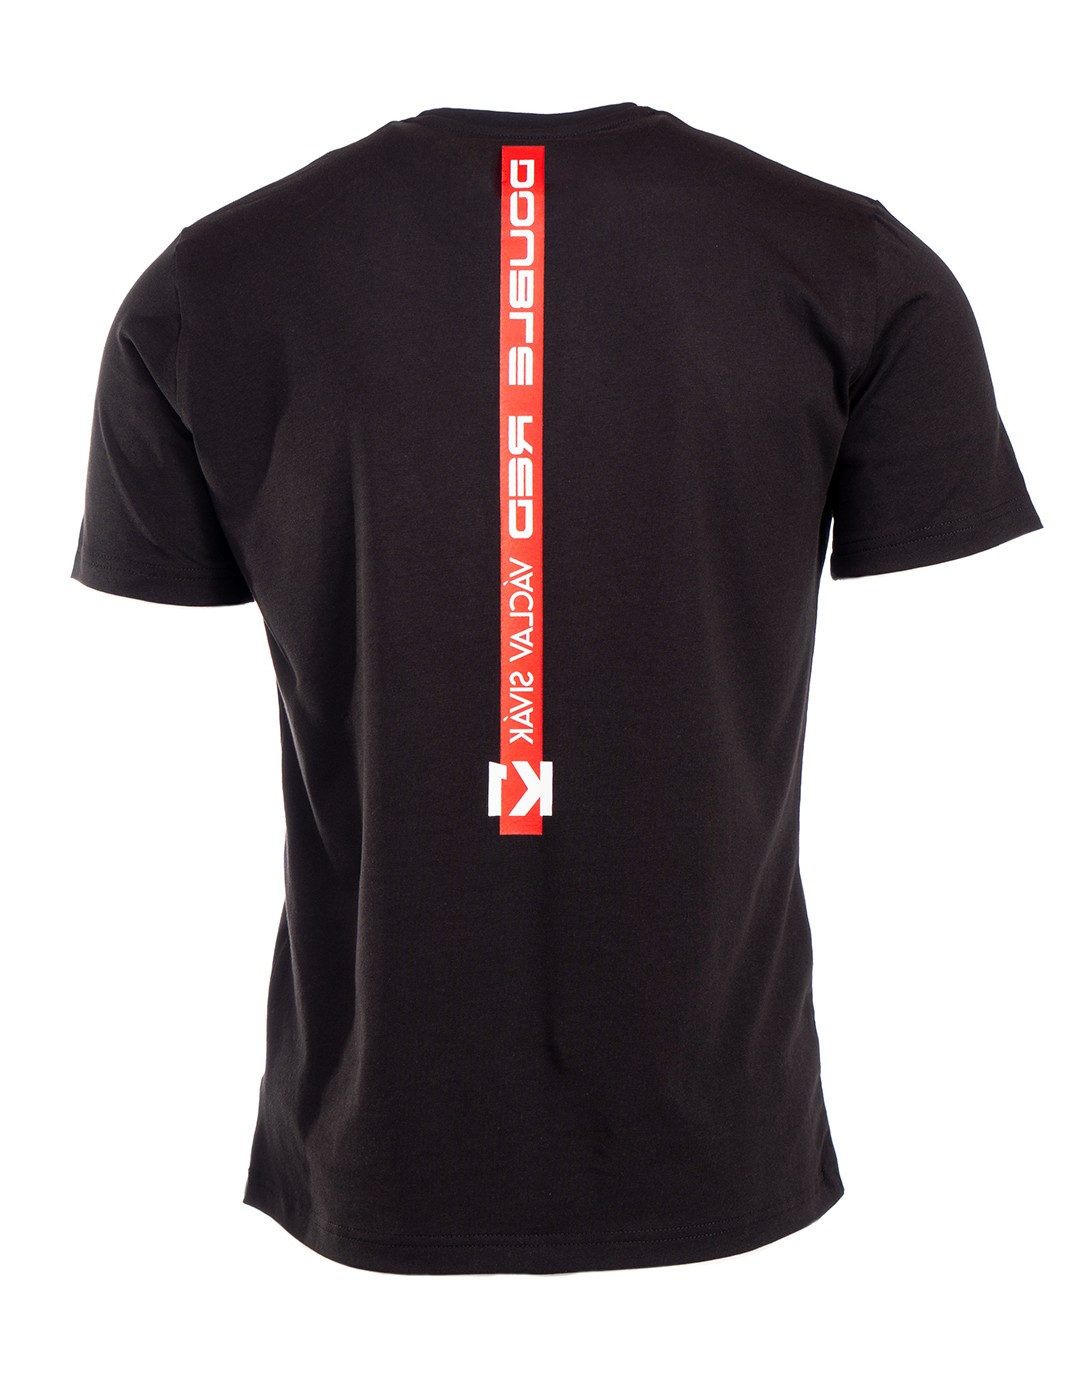 T-Shirt SIVAK K1 Black